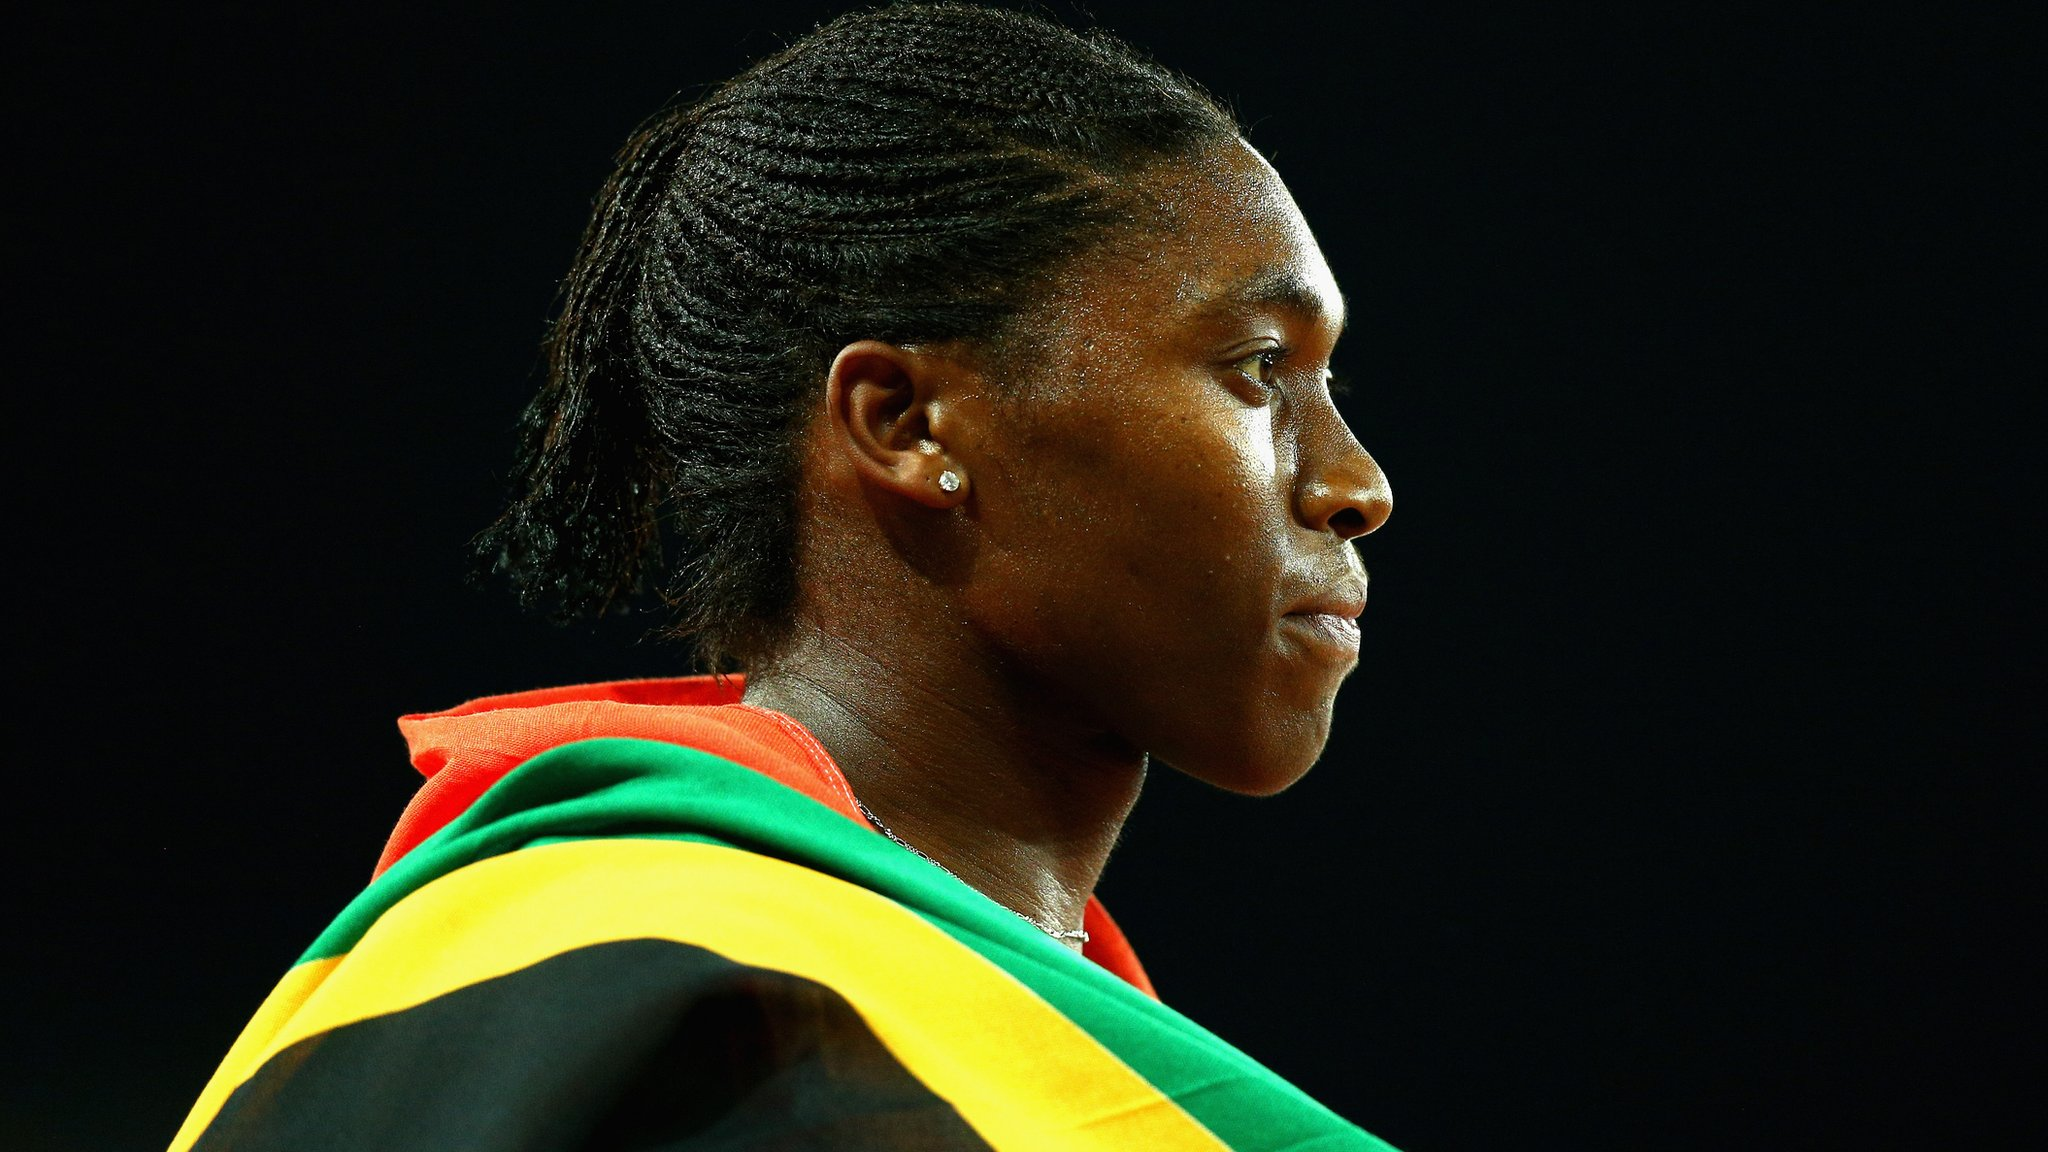 'Women's sense of belonging being questioned' - SA government asks world to stand with Semenya